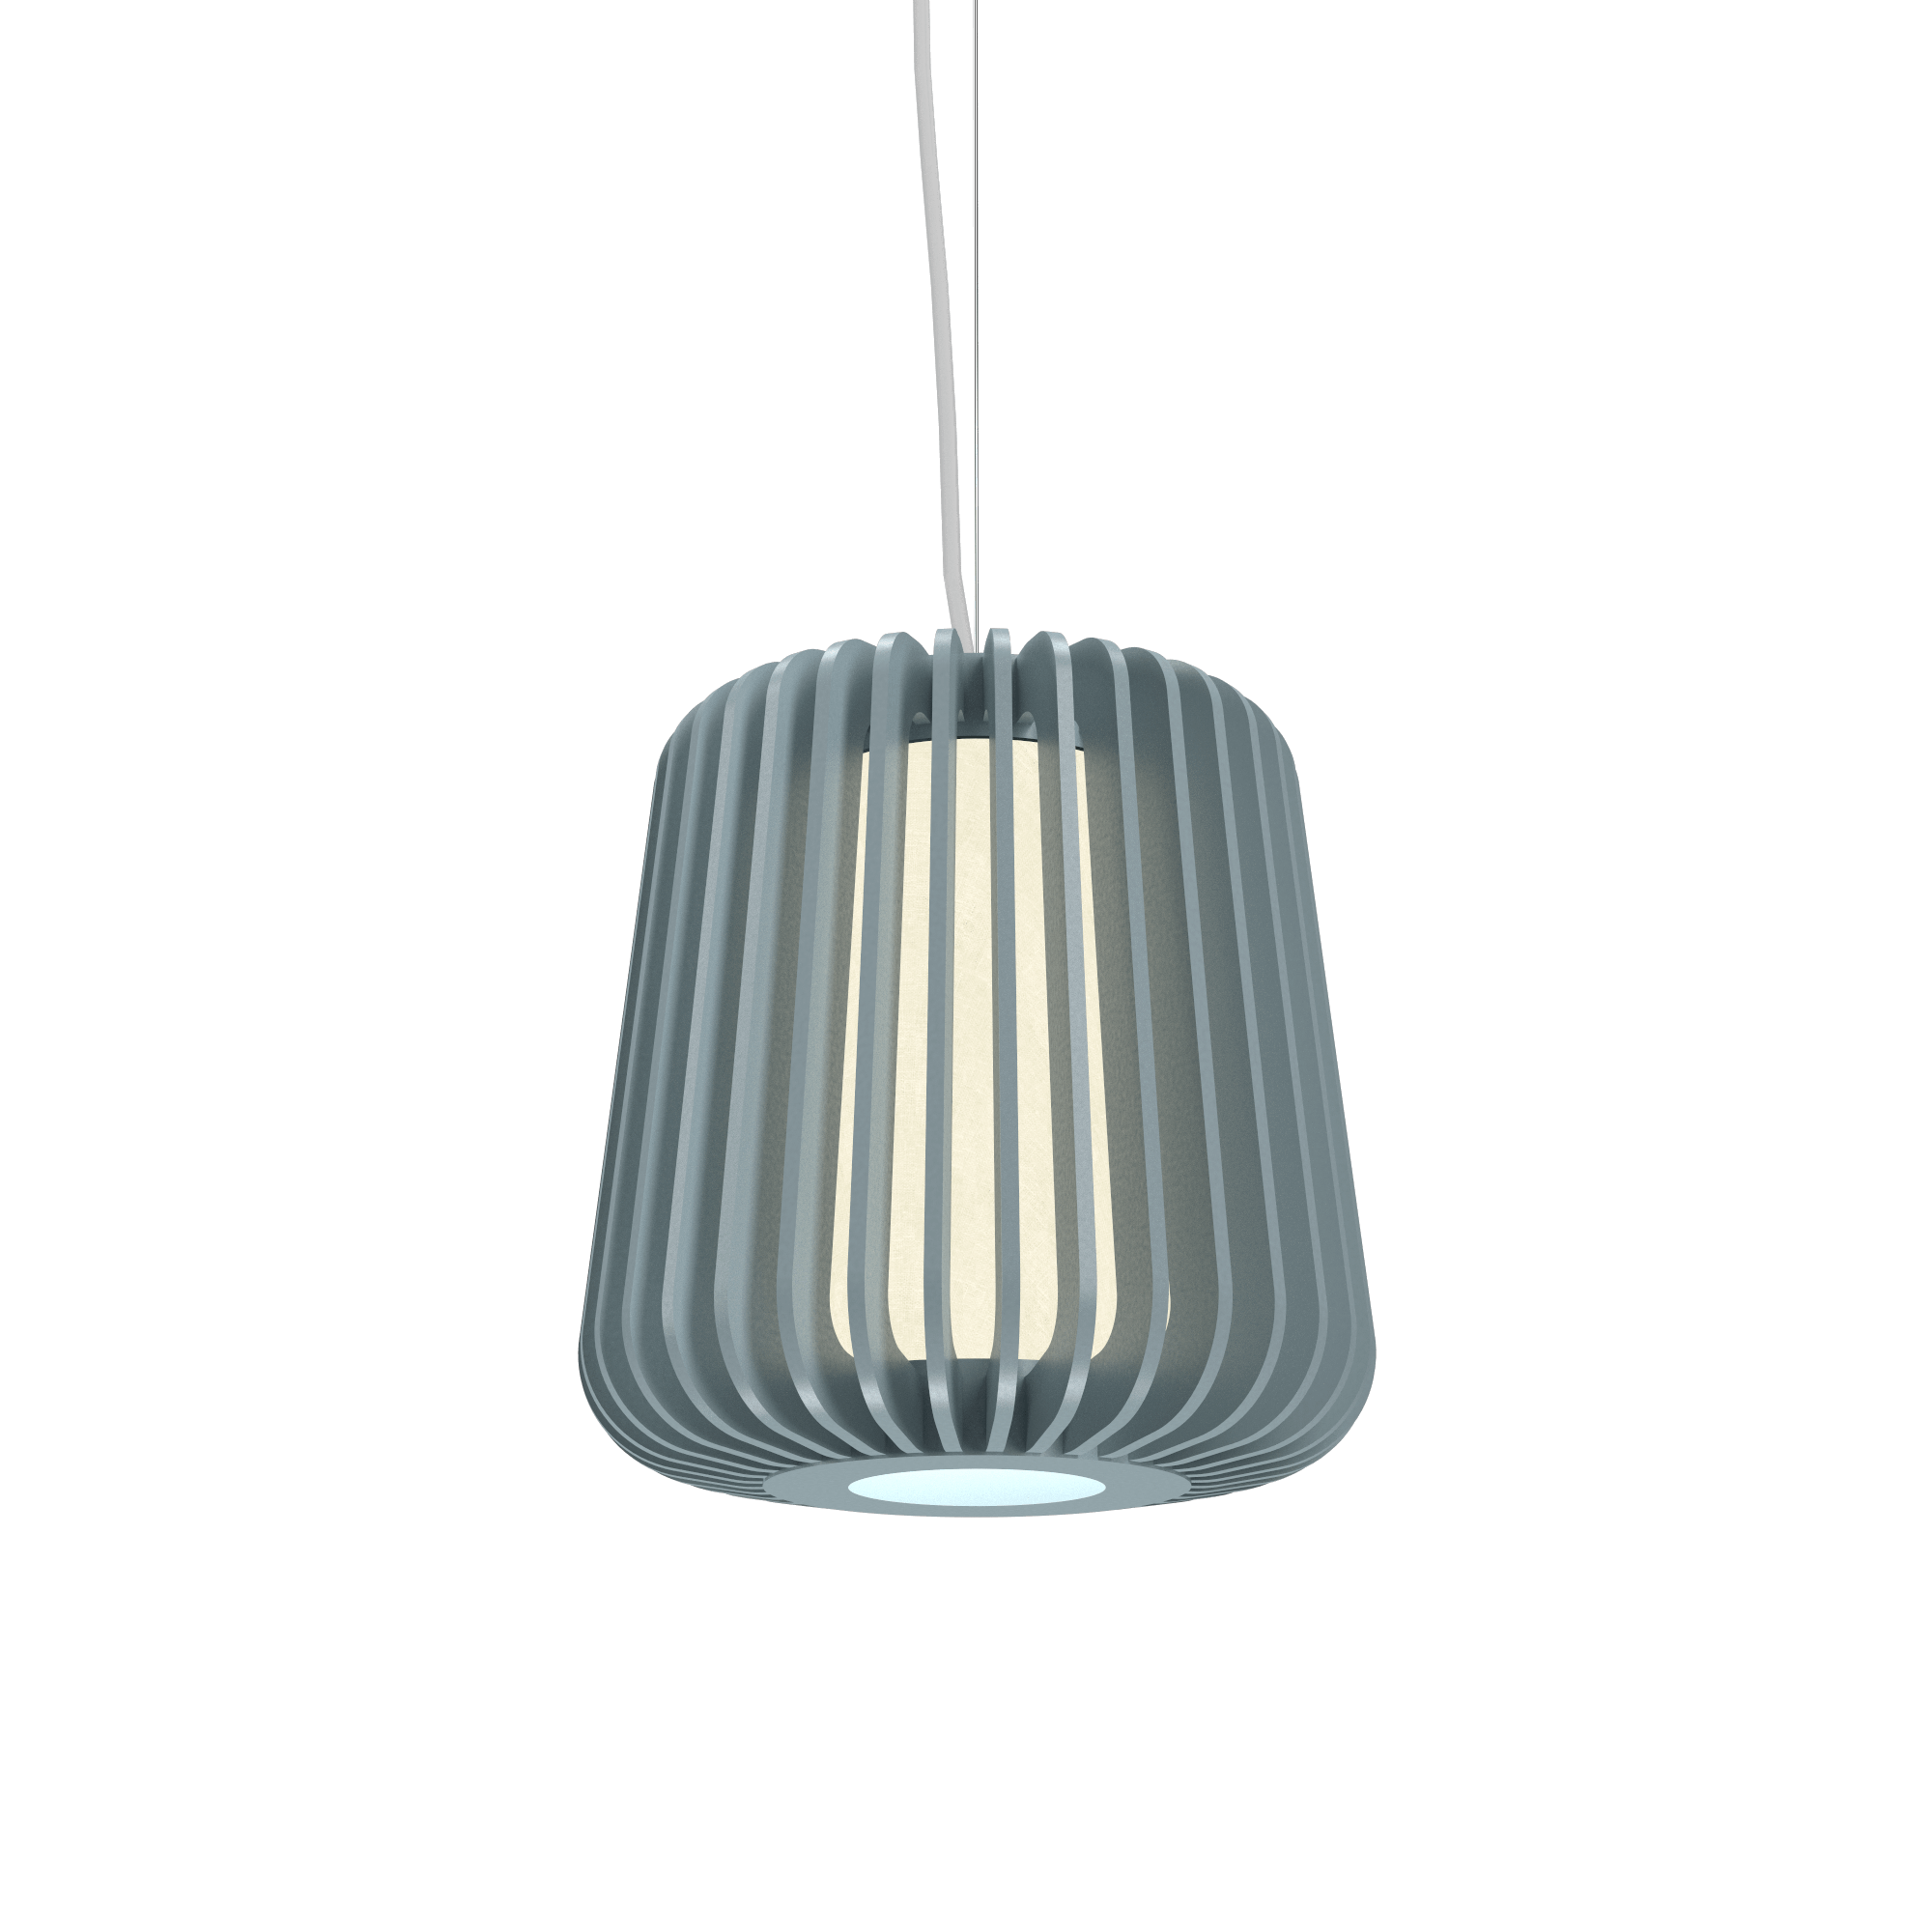 Pendant Lamp Accord Stecche Di Legno 1426 - Stecche Di Legno Line Accord Lighting | Satin Blue